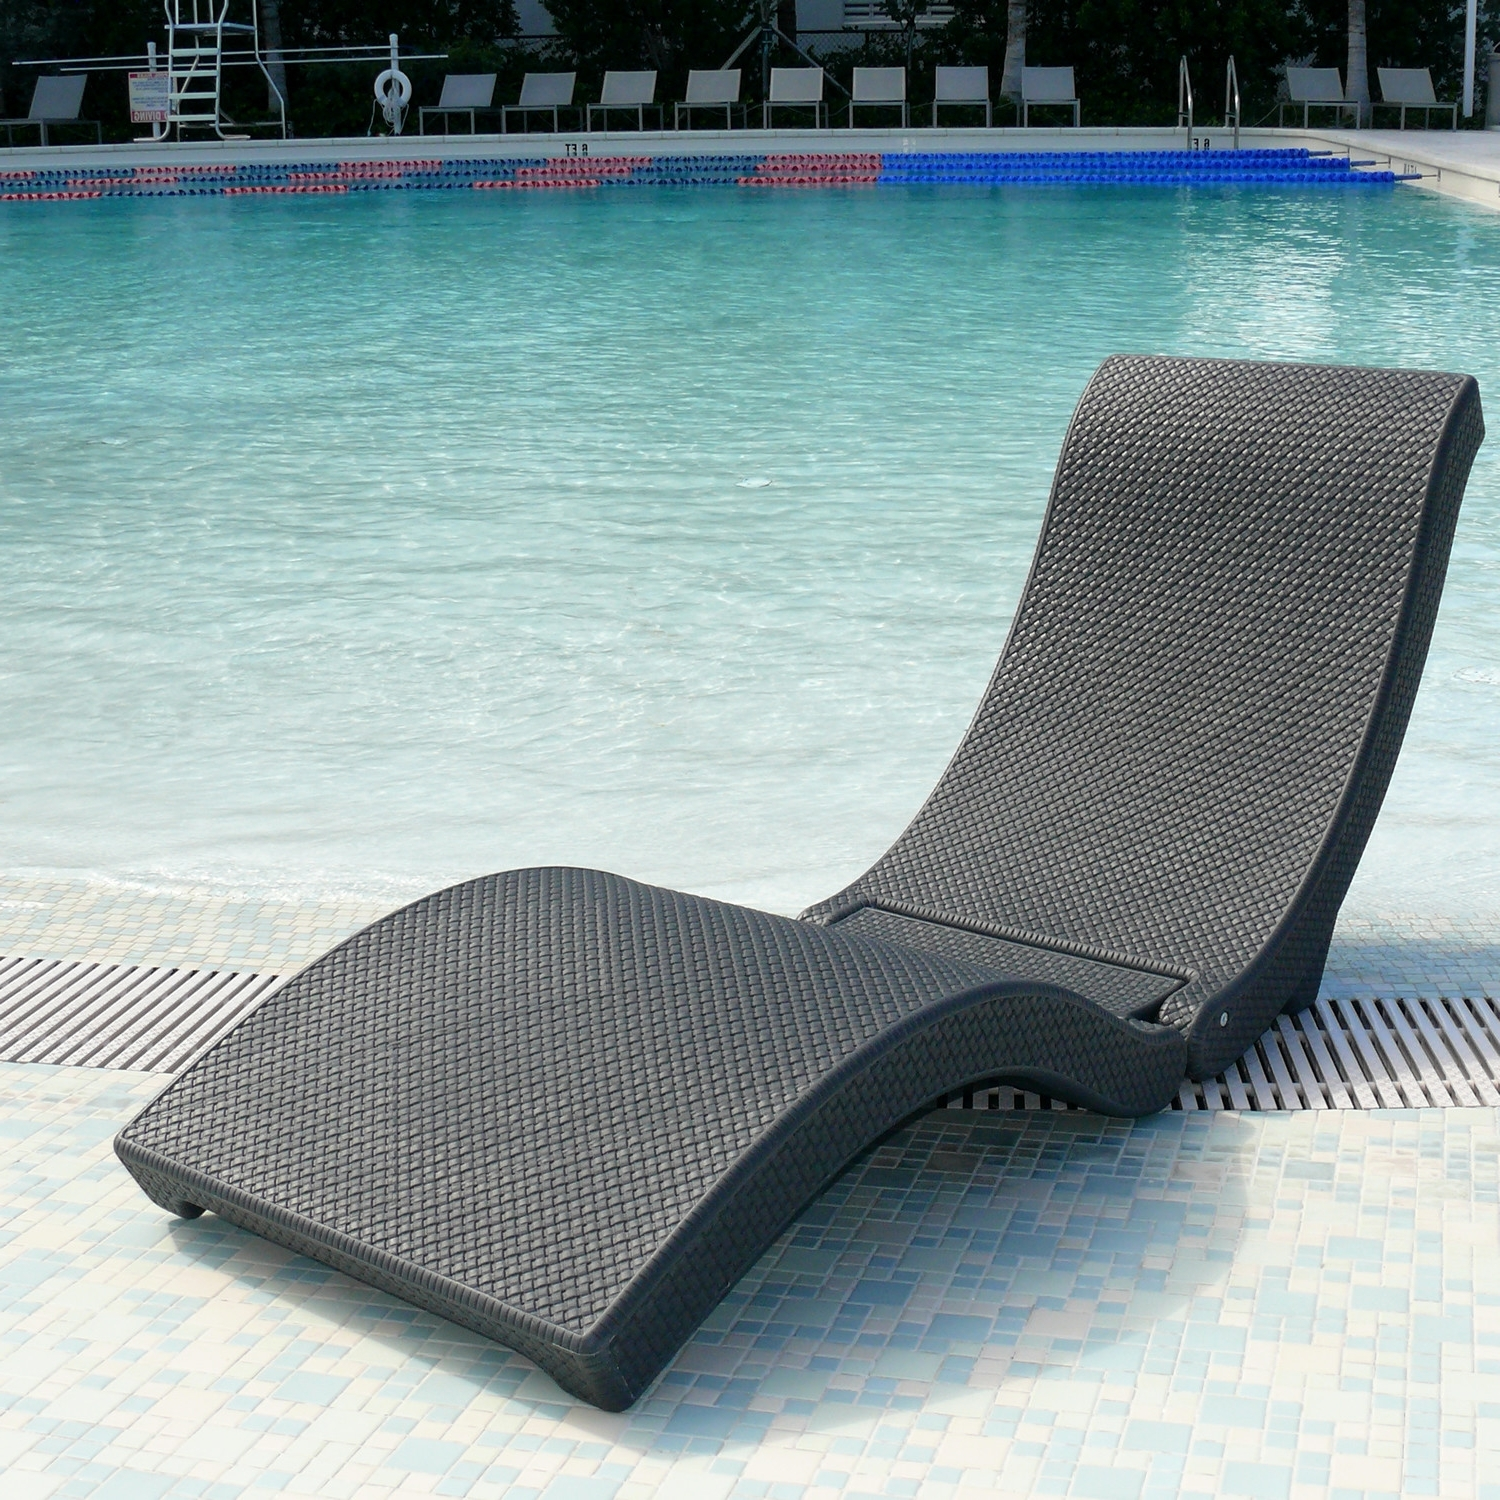 Pinterest Within Pool Chaise Lounge Chairs (View 8 of 15)